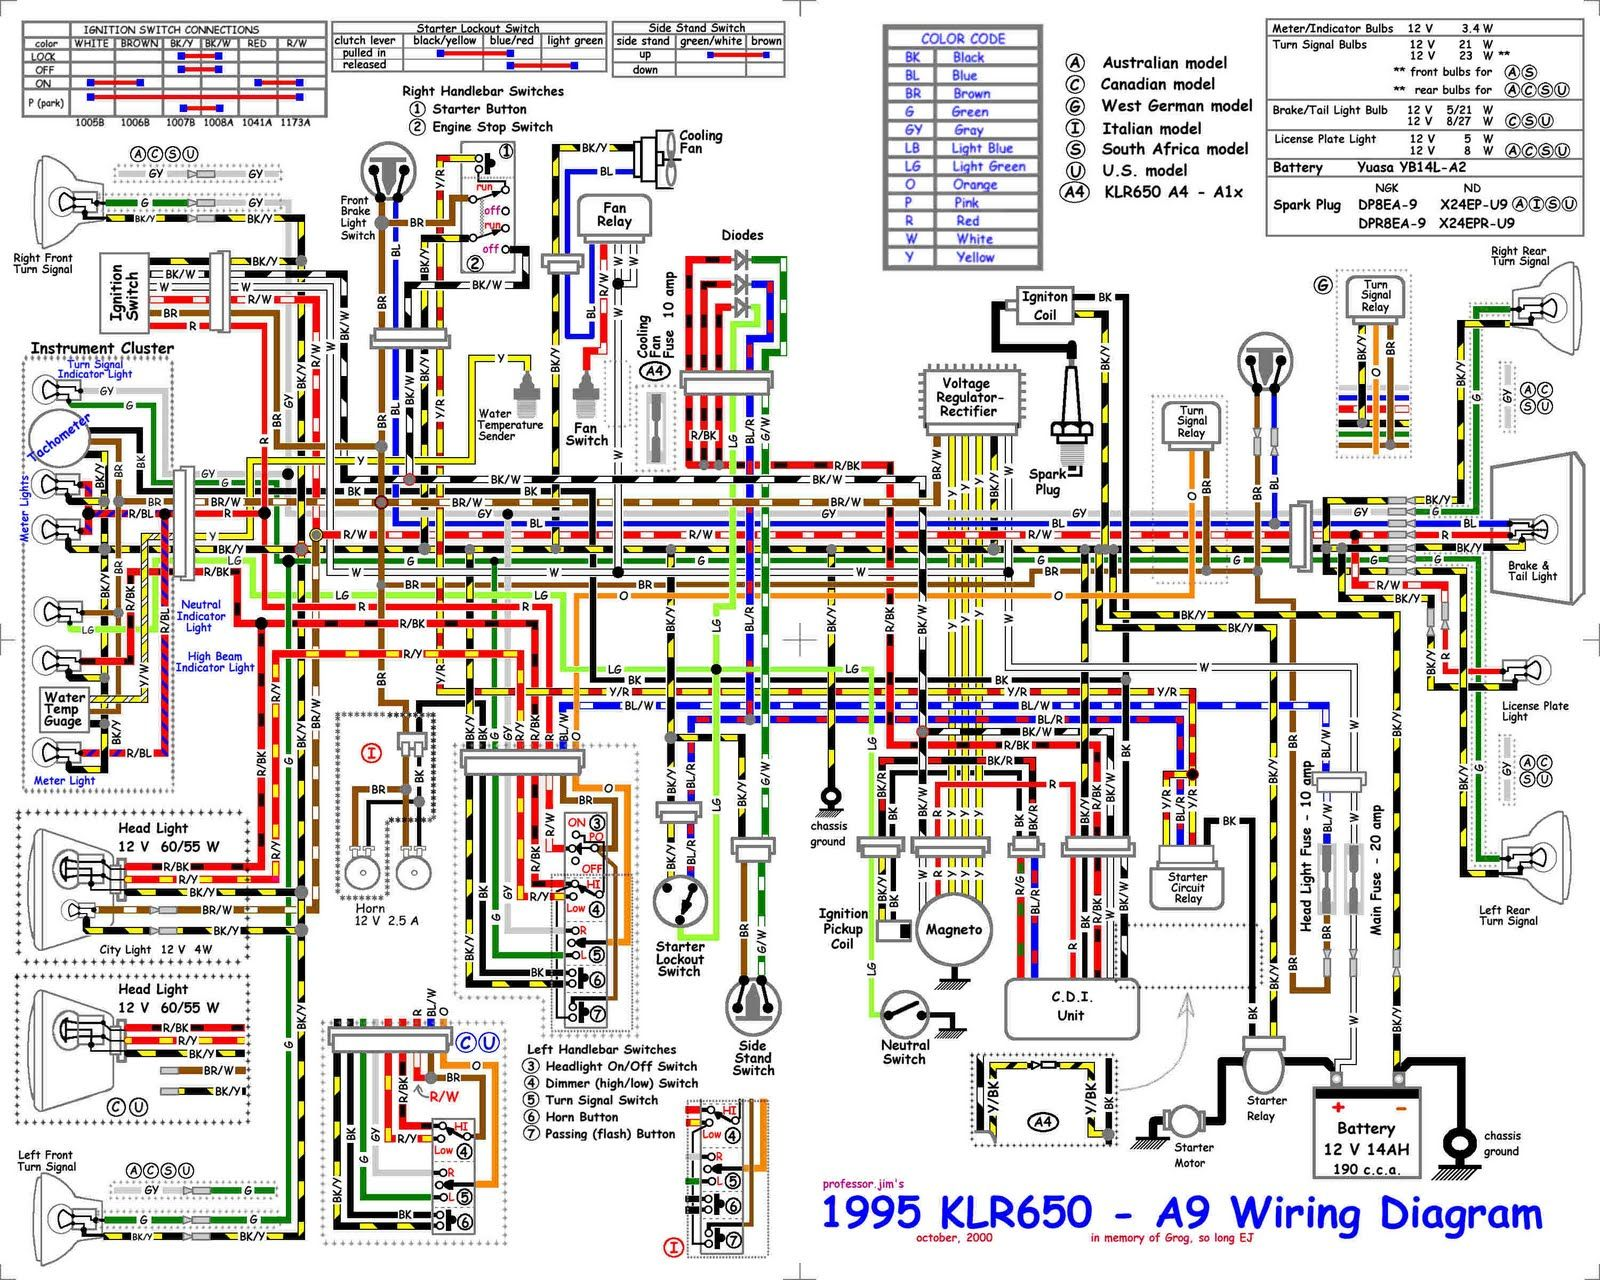 1995 monte carlo wiring diagram - wiring diagram options drab-zip -  drab-zip.studiopyxis.it  pyxis